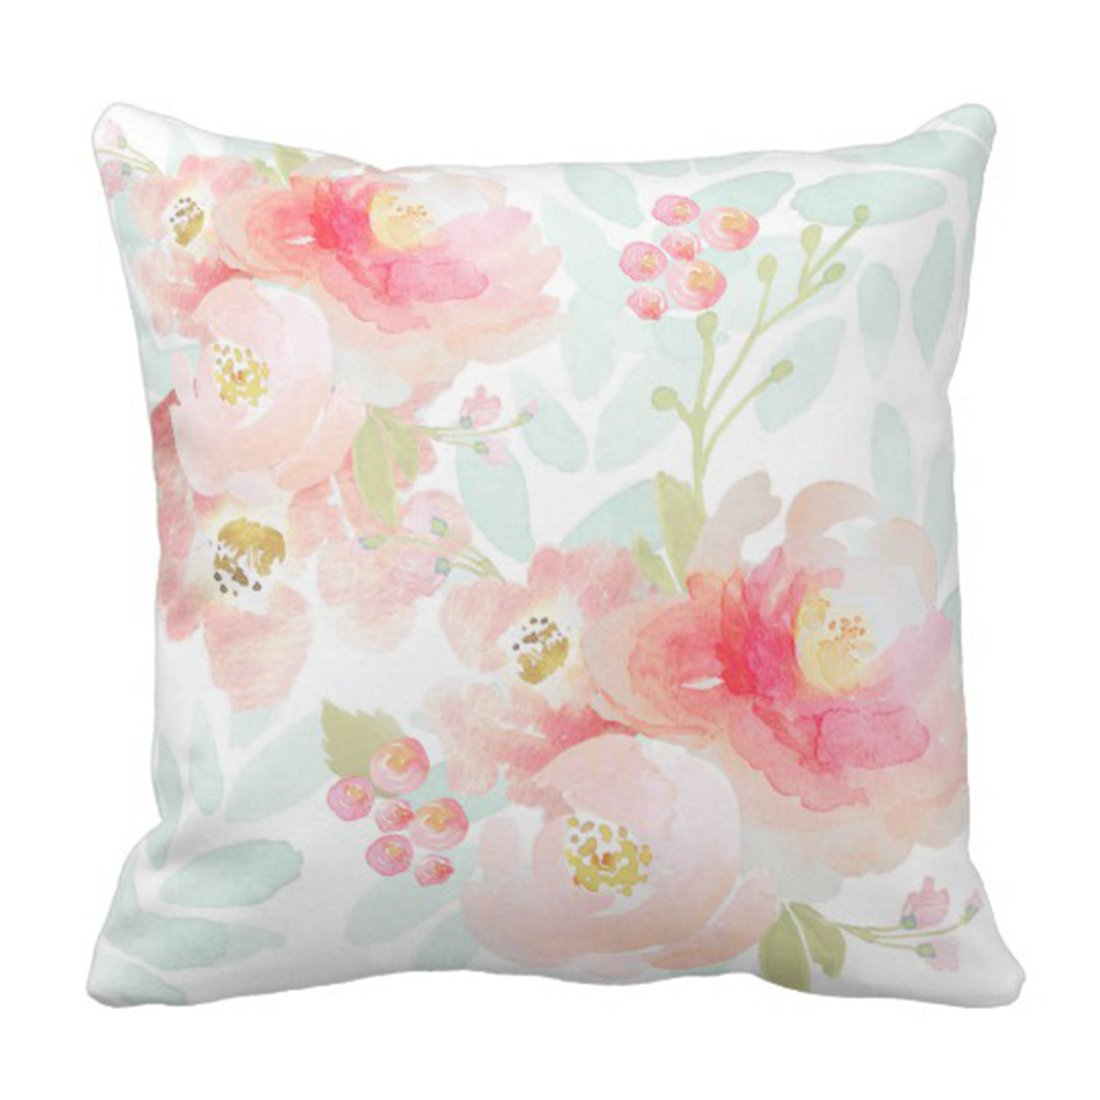 Amazon Emvency Throw Pillow Cover Watercolor Peonies Indy Bloom